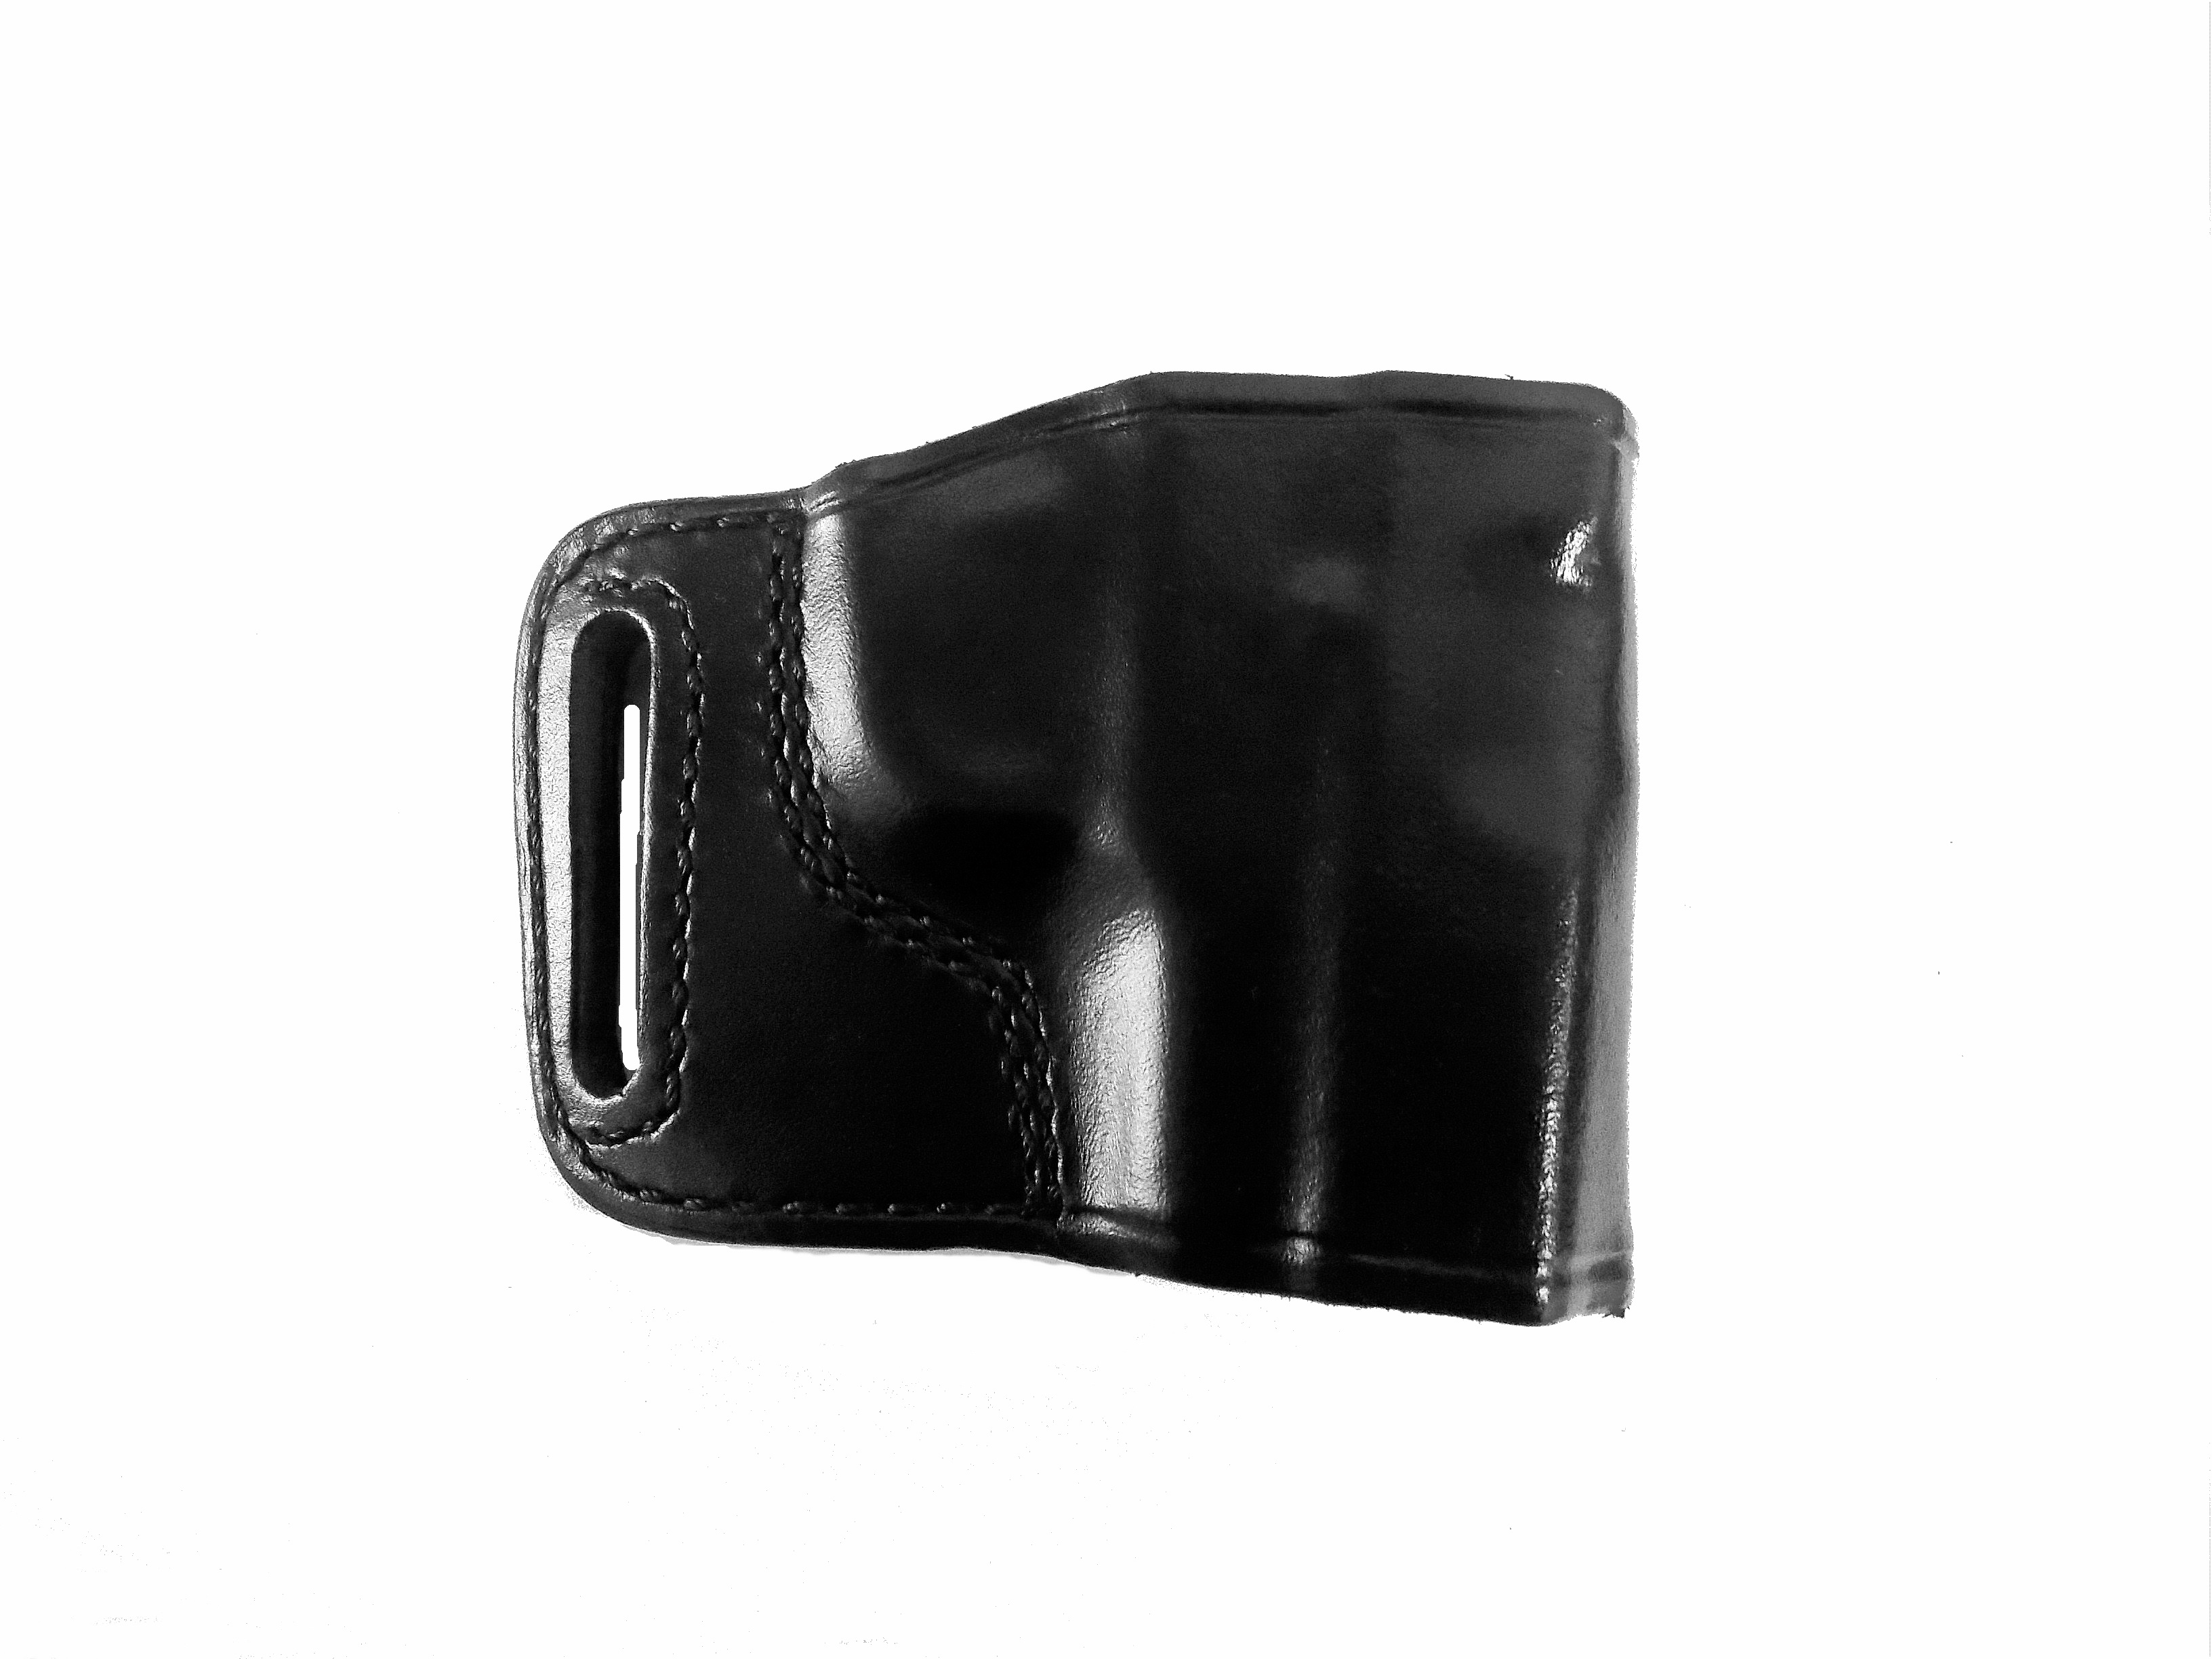 *J.I.T. SLIDE OPEN SLOT PLAIN BELT HOLSTER